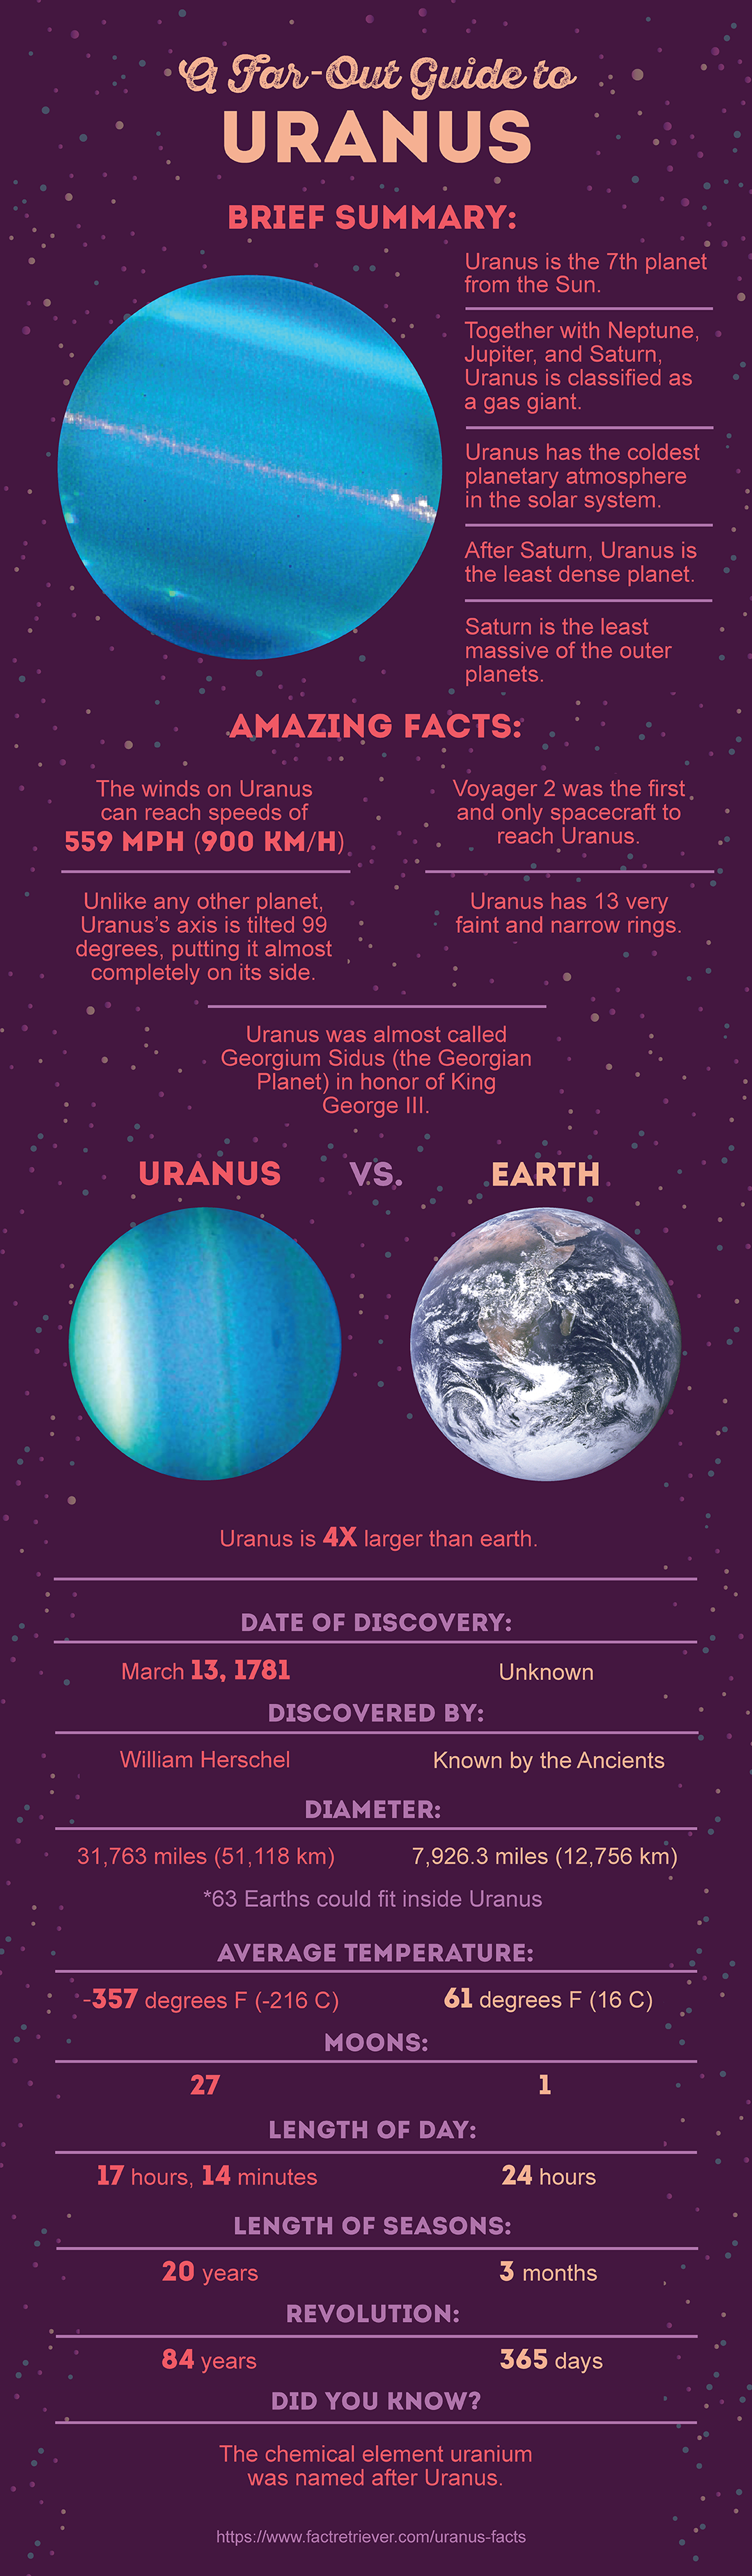 32 Interesting Uranus Facts Fun Facts About Uranus Fun Facts About Uranus Uranus Facts